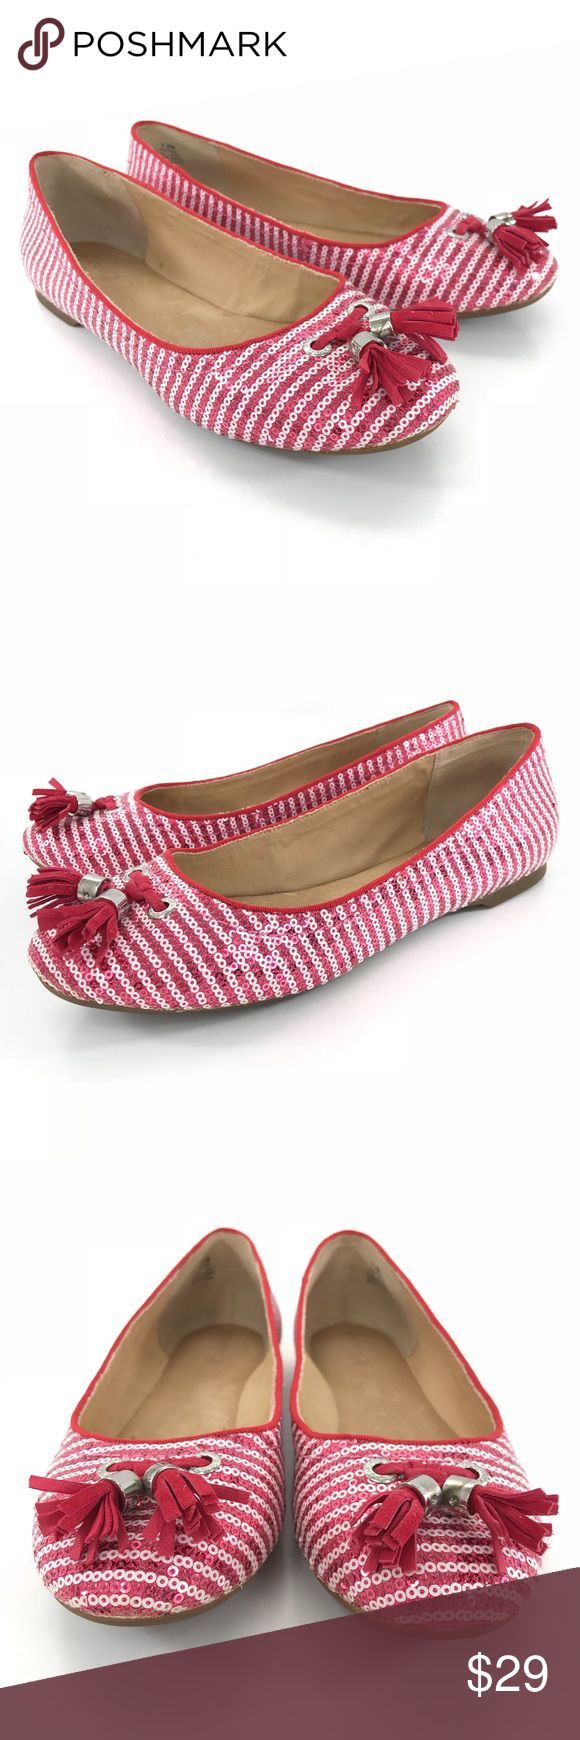 Sperry Topsider Sequin Tassel Striped Ballet Flats Sperry Topsider  Womens Size 7.5  Sequin Sparkle Tassel Front Striped Ballet Flats Fushcia/Pinkish Red and White Condition: Excellent preowned condition with only very light signs of use. These look to have been worn very little. No major flaws or imperfections. See photos as a visual description of the item. Sperry Top-Sider Shoes Flats & Loafers